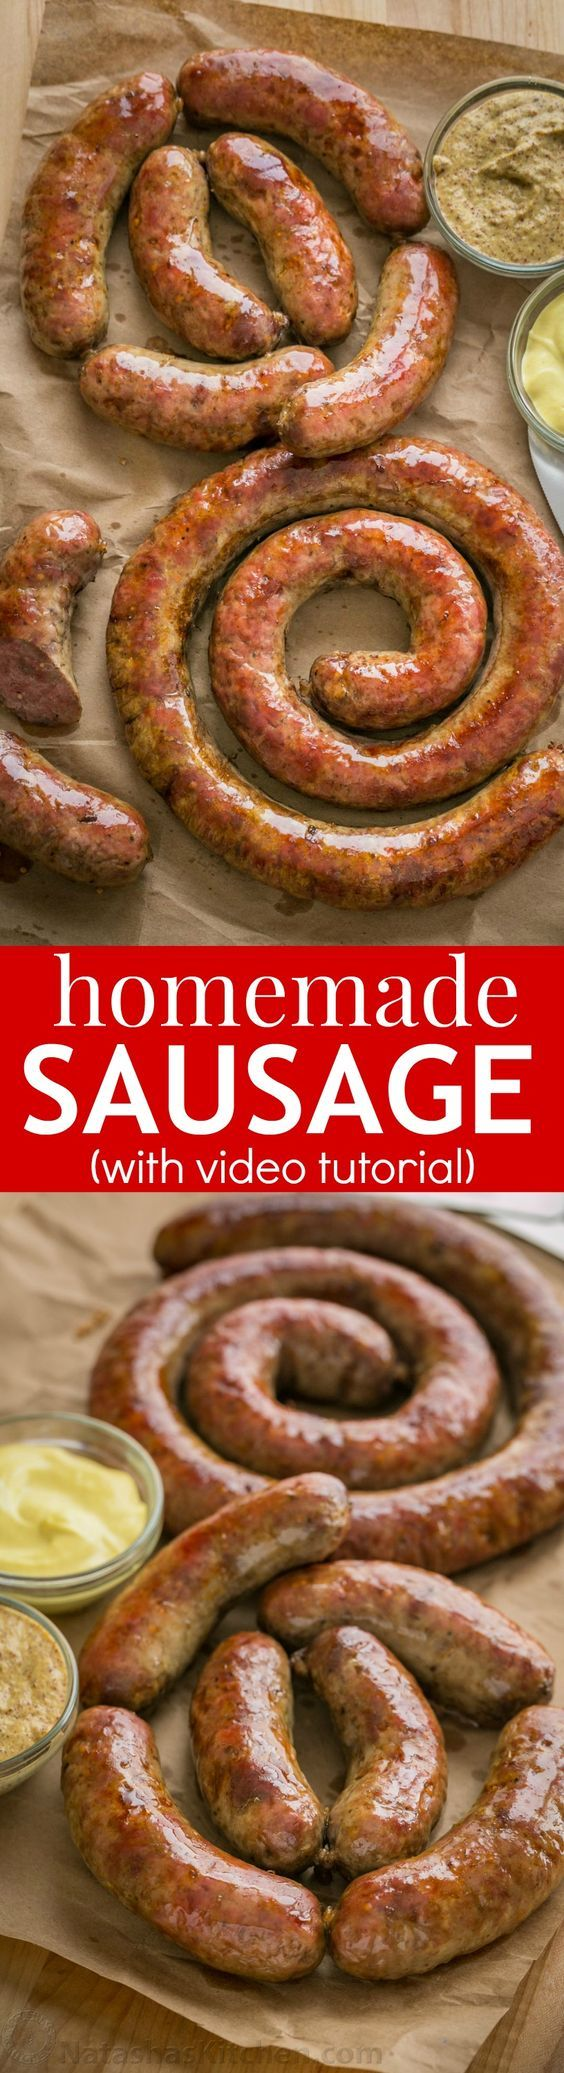 Learn how to make Homemade Sausage with this VIDEO recipe. Homemade sausage is a great way to use less expensive cuts of meat. The best kielbasa recipe!   natashaskitchen.com